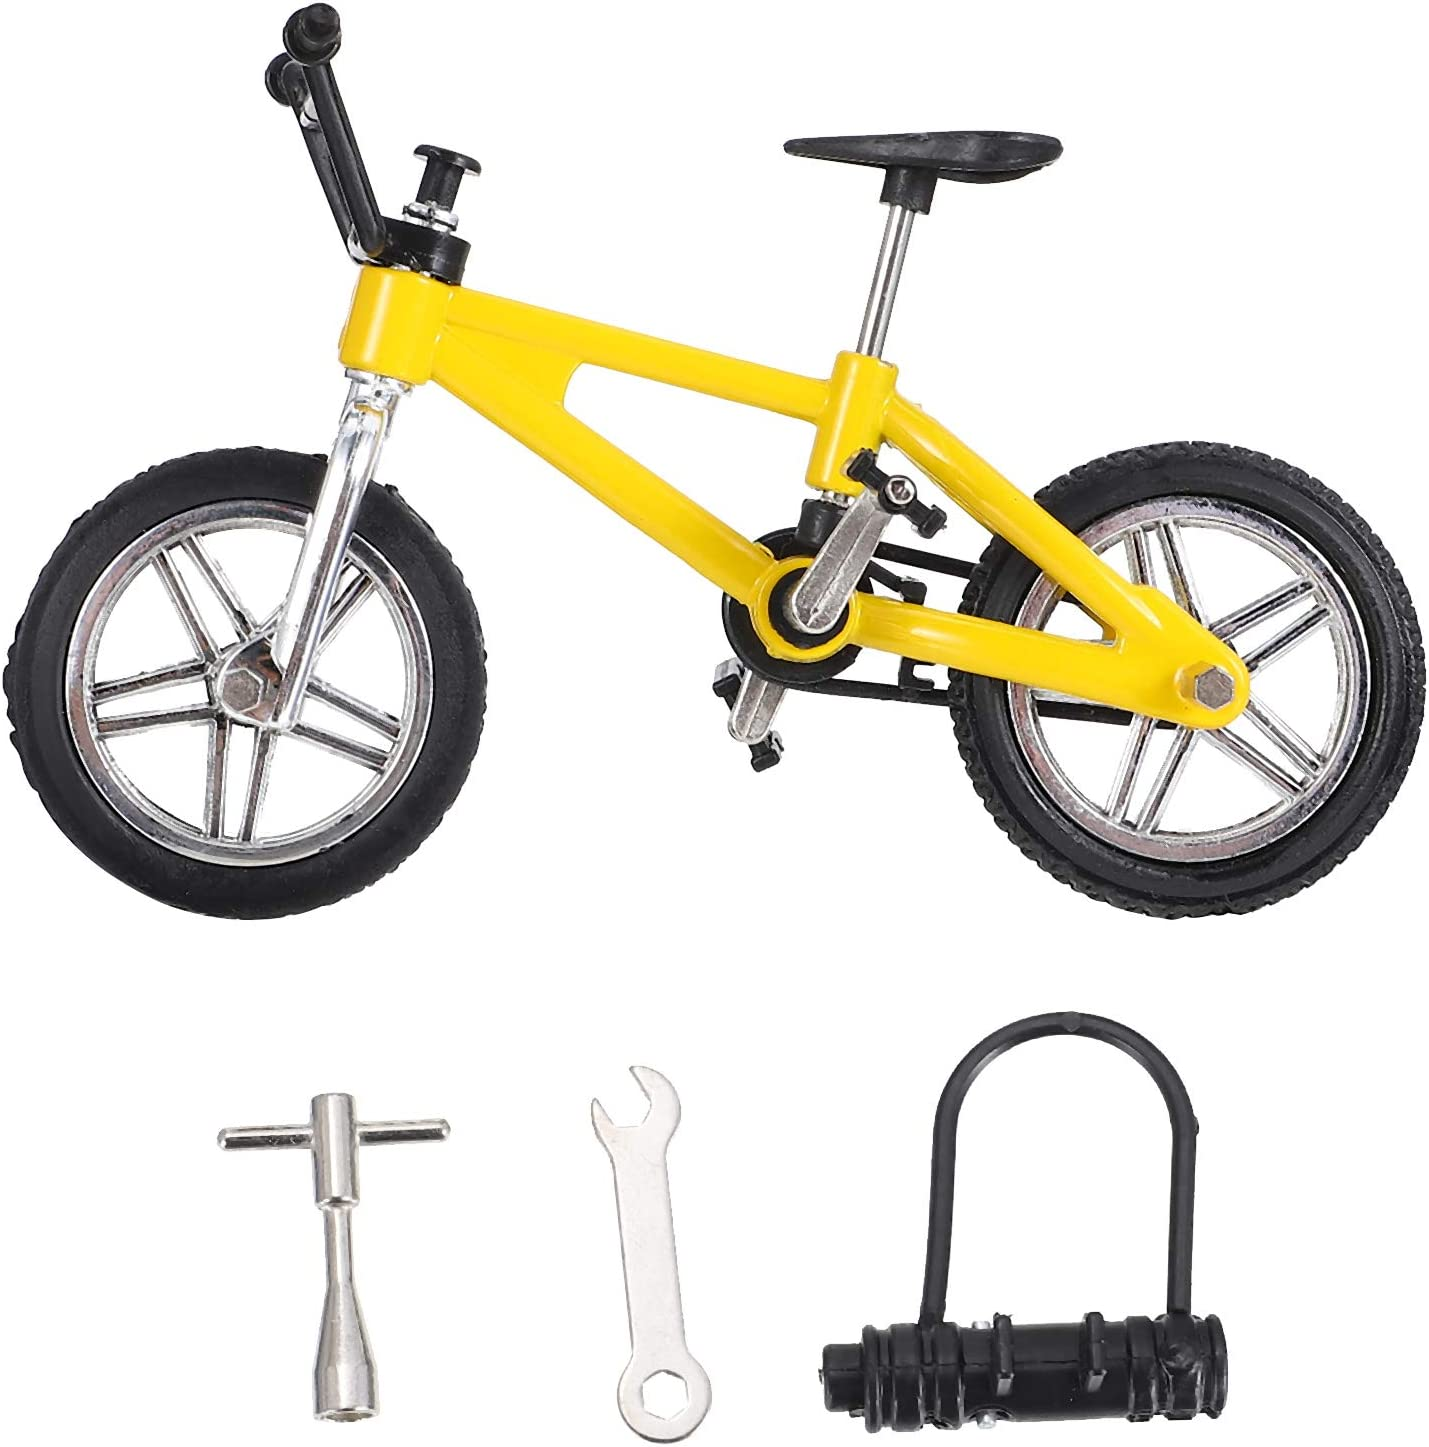 Abaodam Mini Mountain Bike Alloy Finger Kids Childre Toy Bicycle Philadelphia Outlet SALE Mall